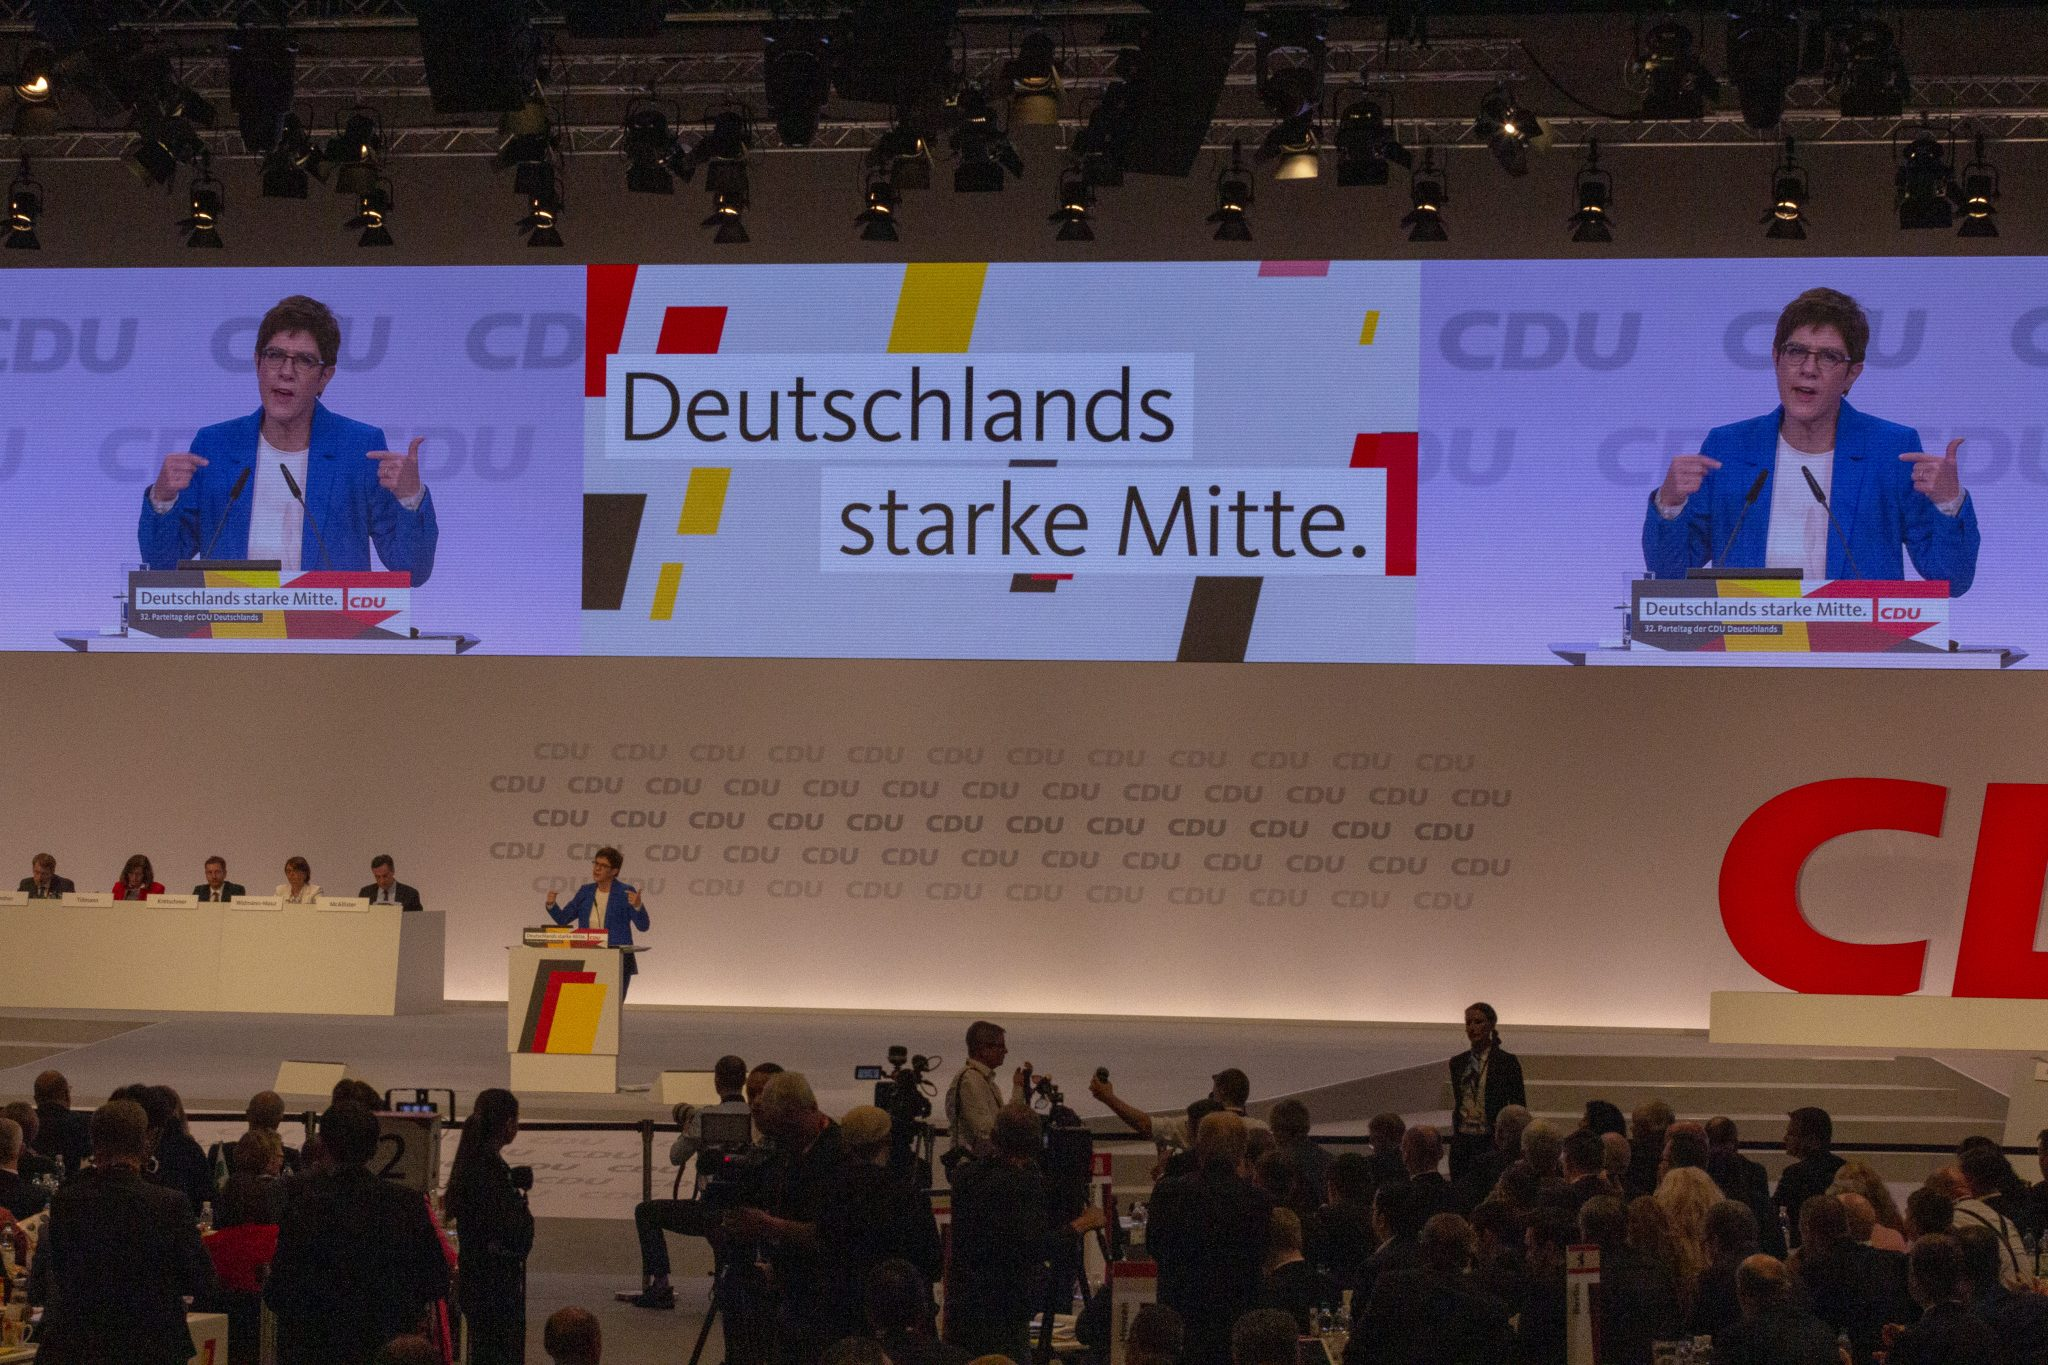 https://commons.wikimedia.org/wiki/File:2019-11-22_Annegret_Kramp-Karrenbauer_CDU_Parteitag_by_OlafKosinsky_MG_5455.jpg?uselang=de